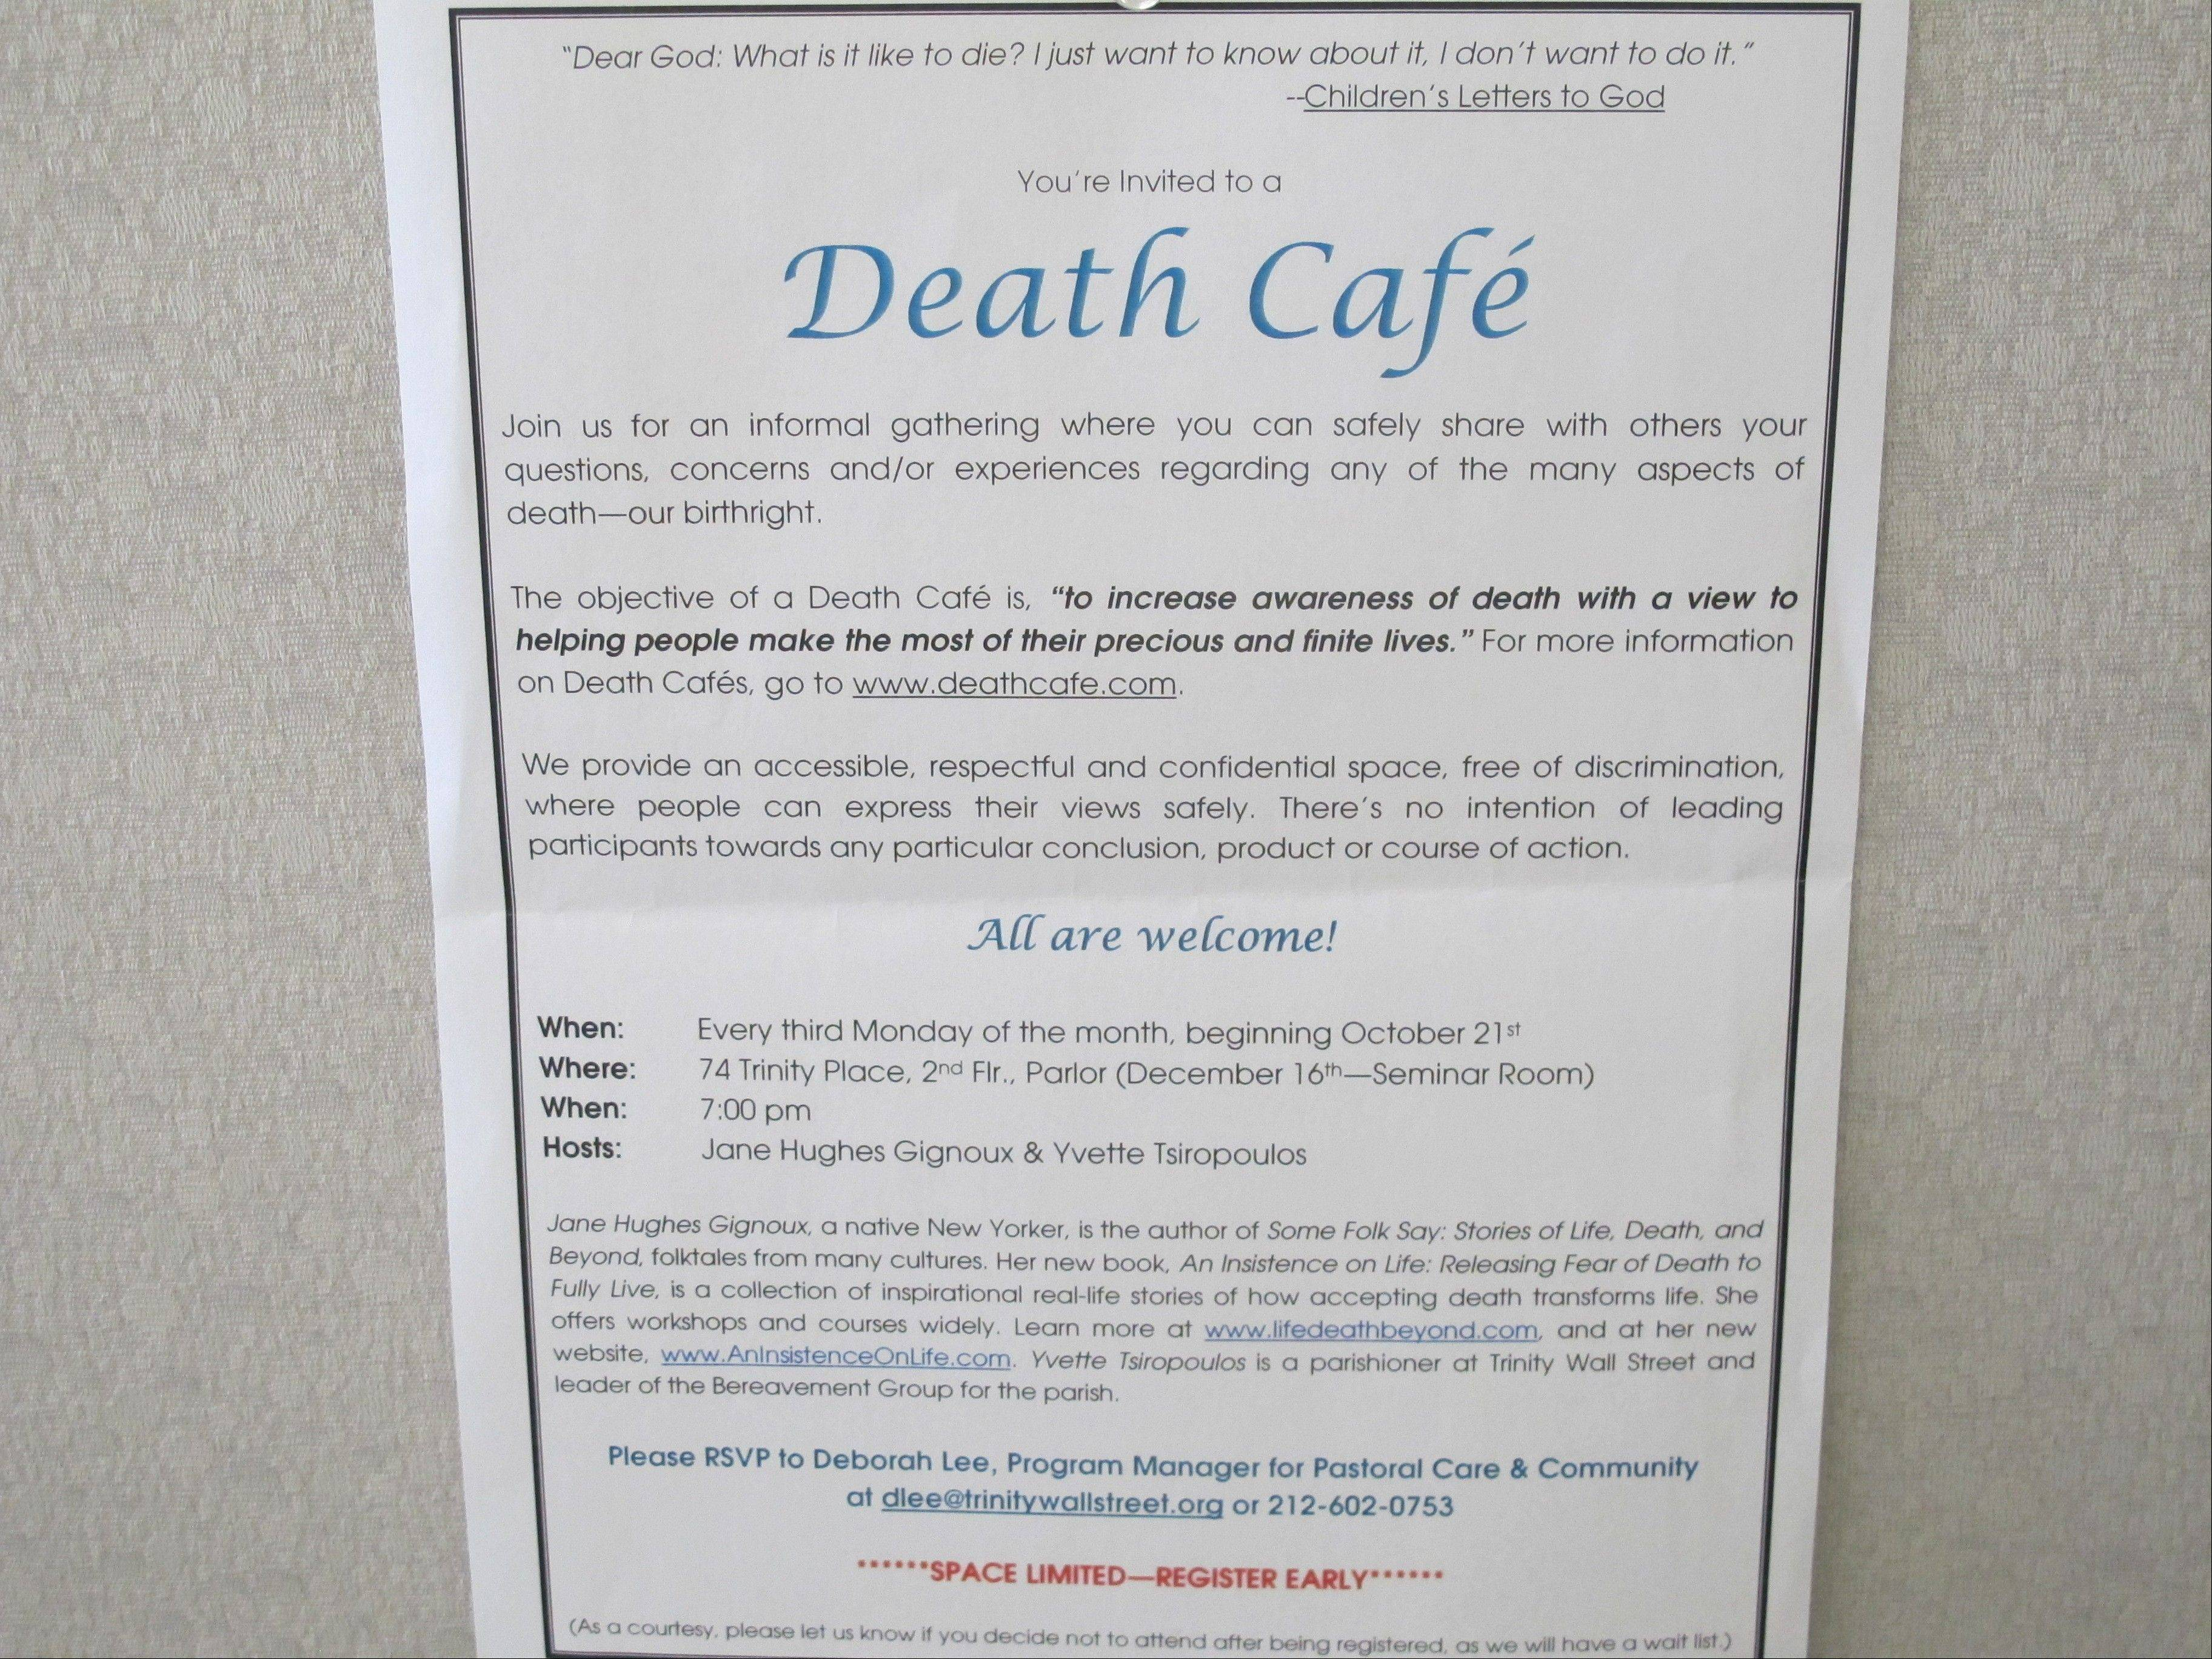 This photo shows an invitation to a Death Cafe discussion in New York City. Death Cafes, where people talk freely about death-related issues, are rapidly spreading through the U.S. and the world.